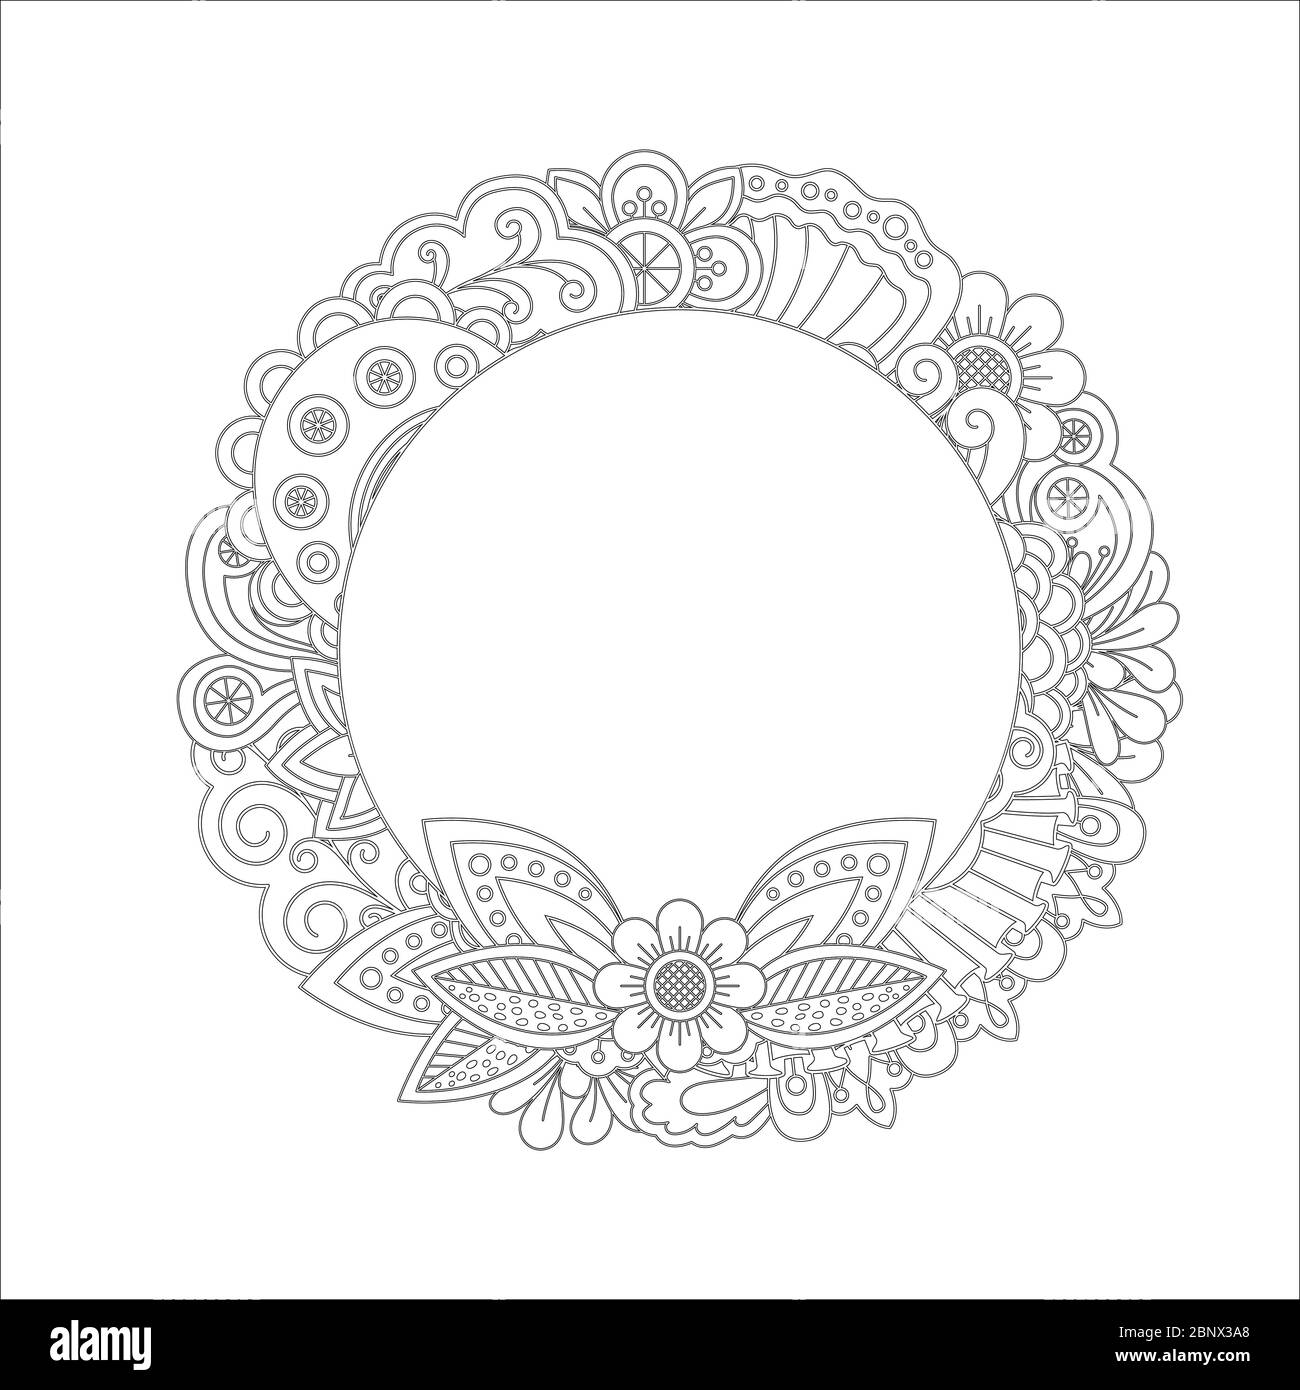 - Floral Wreath Coloring Page Stock Photos & Floral Wreath Coloring